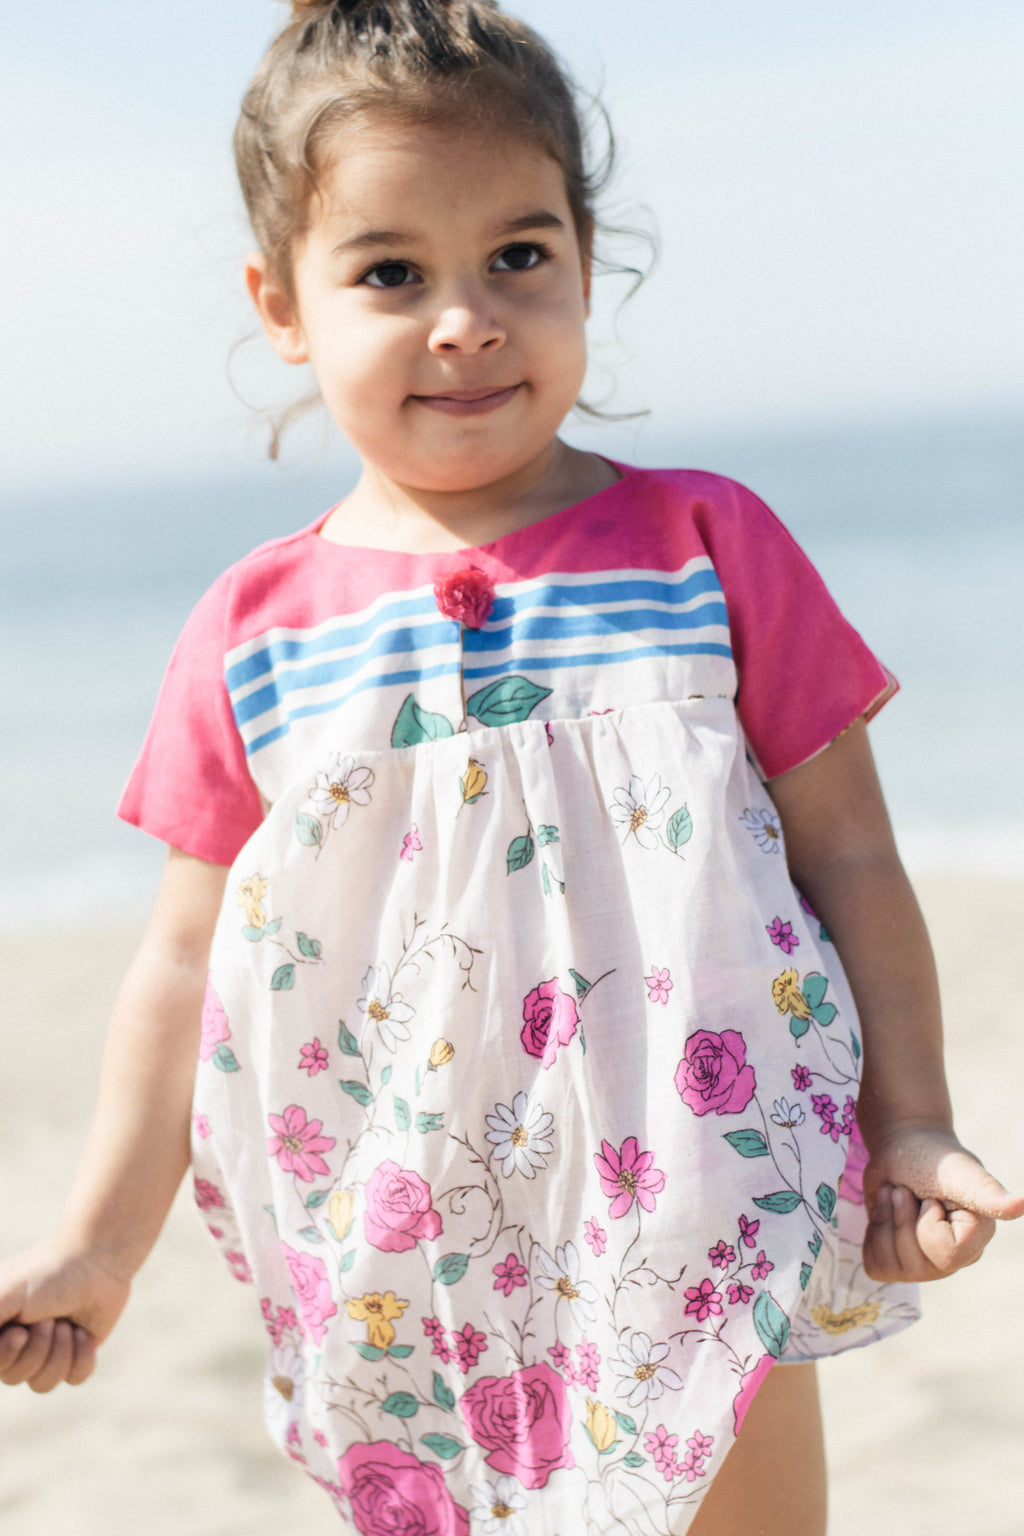 Rainbow Rose Unique Handmade Dress for Baby Girls Holiday Outfit | Born By The Shore